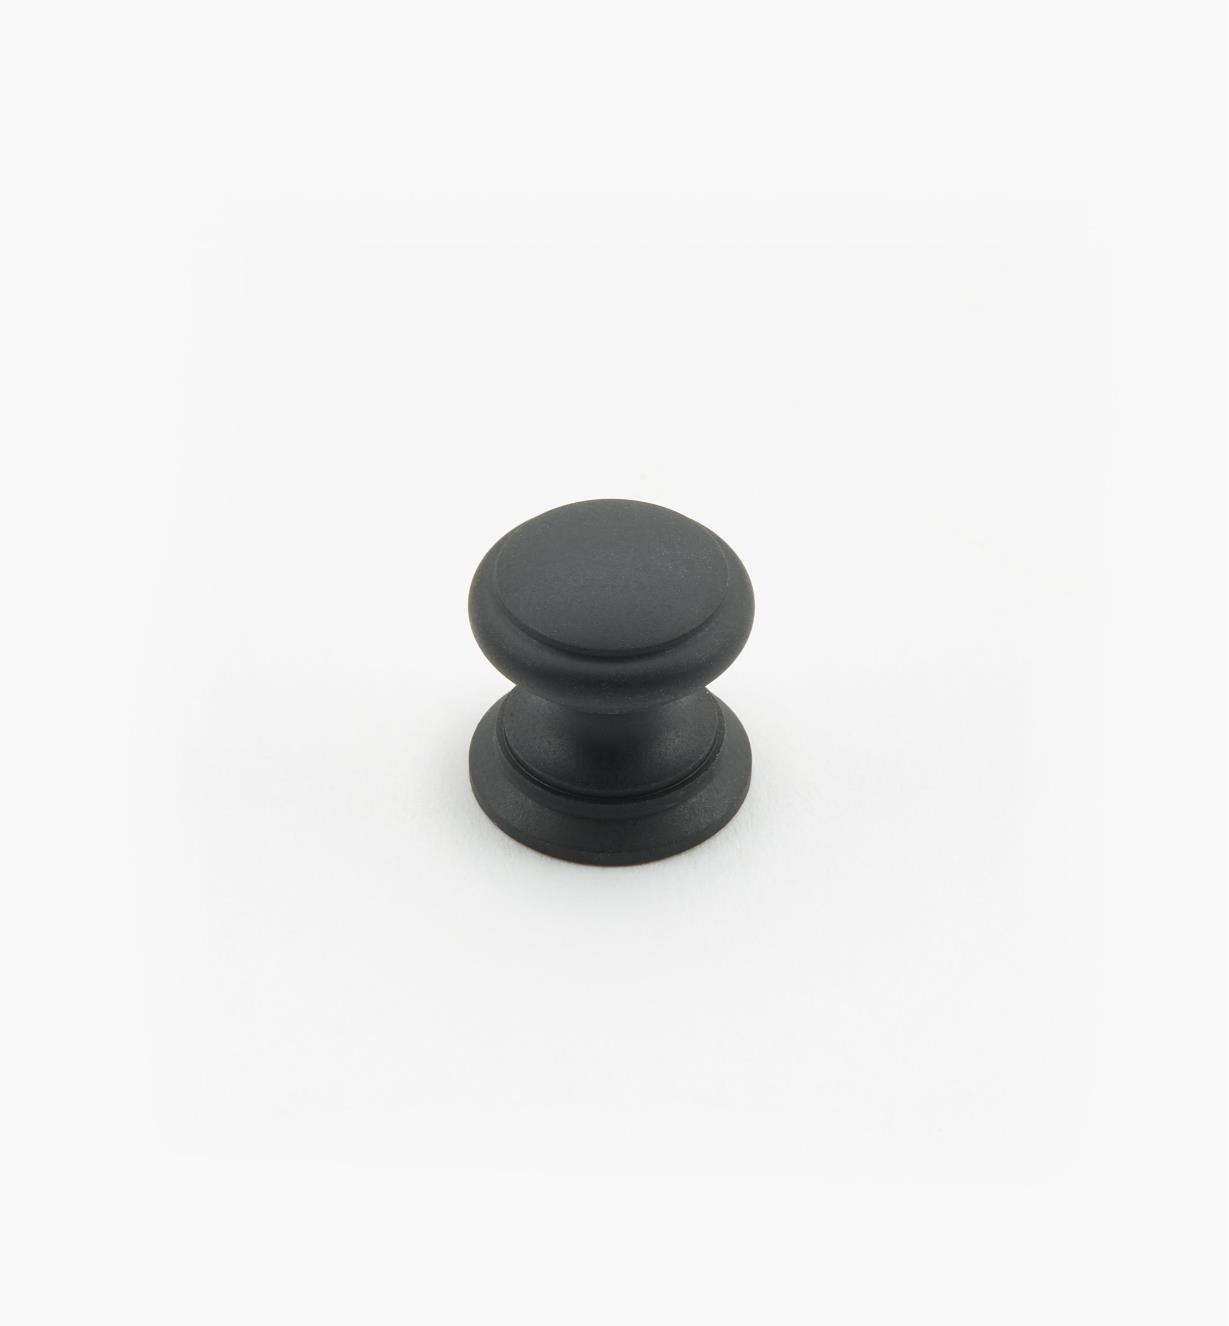 "02W1426 - Oil-Rubbed Bronze Suite - 5/8"" x 5/8"" Round Brass Knob"